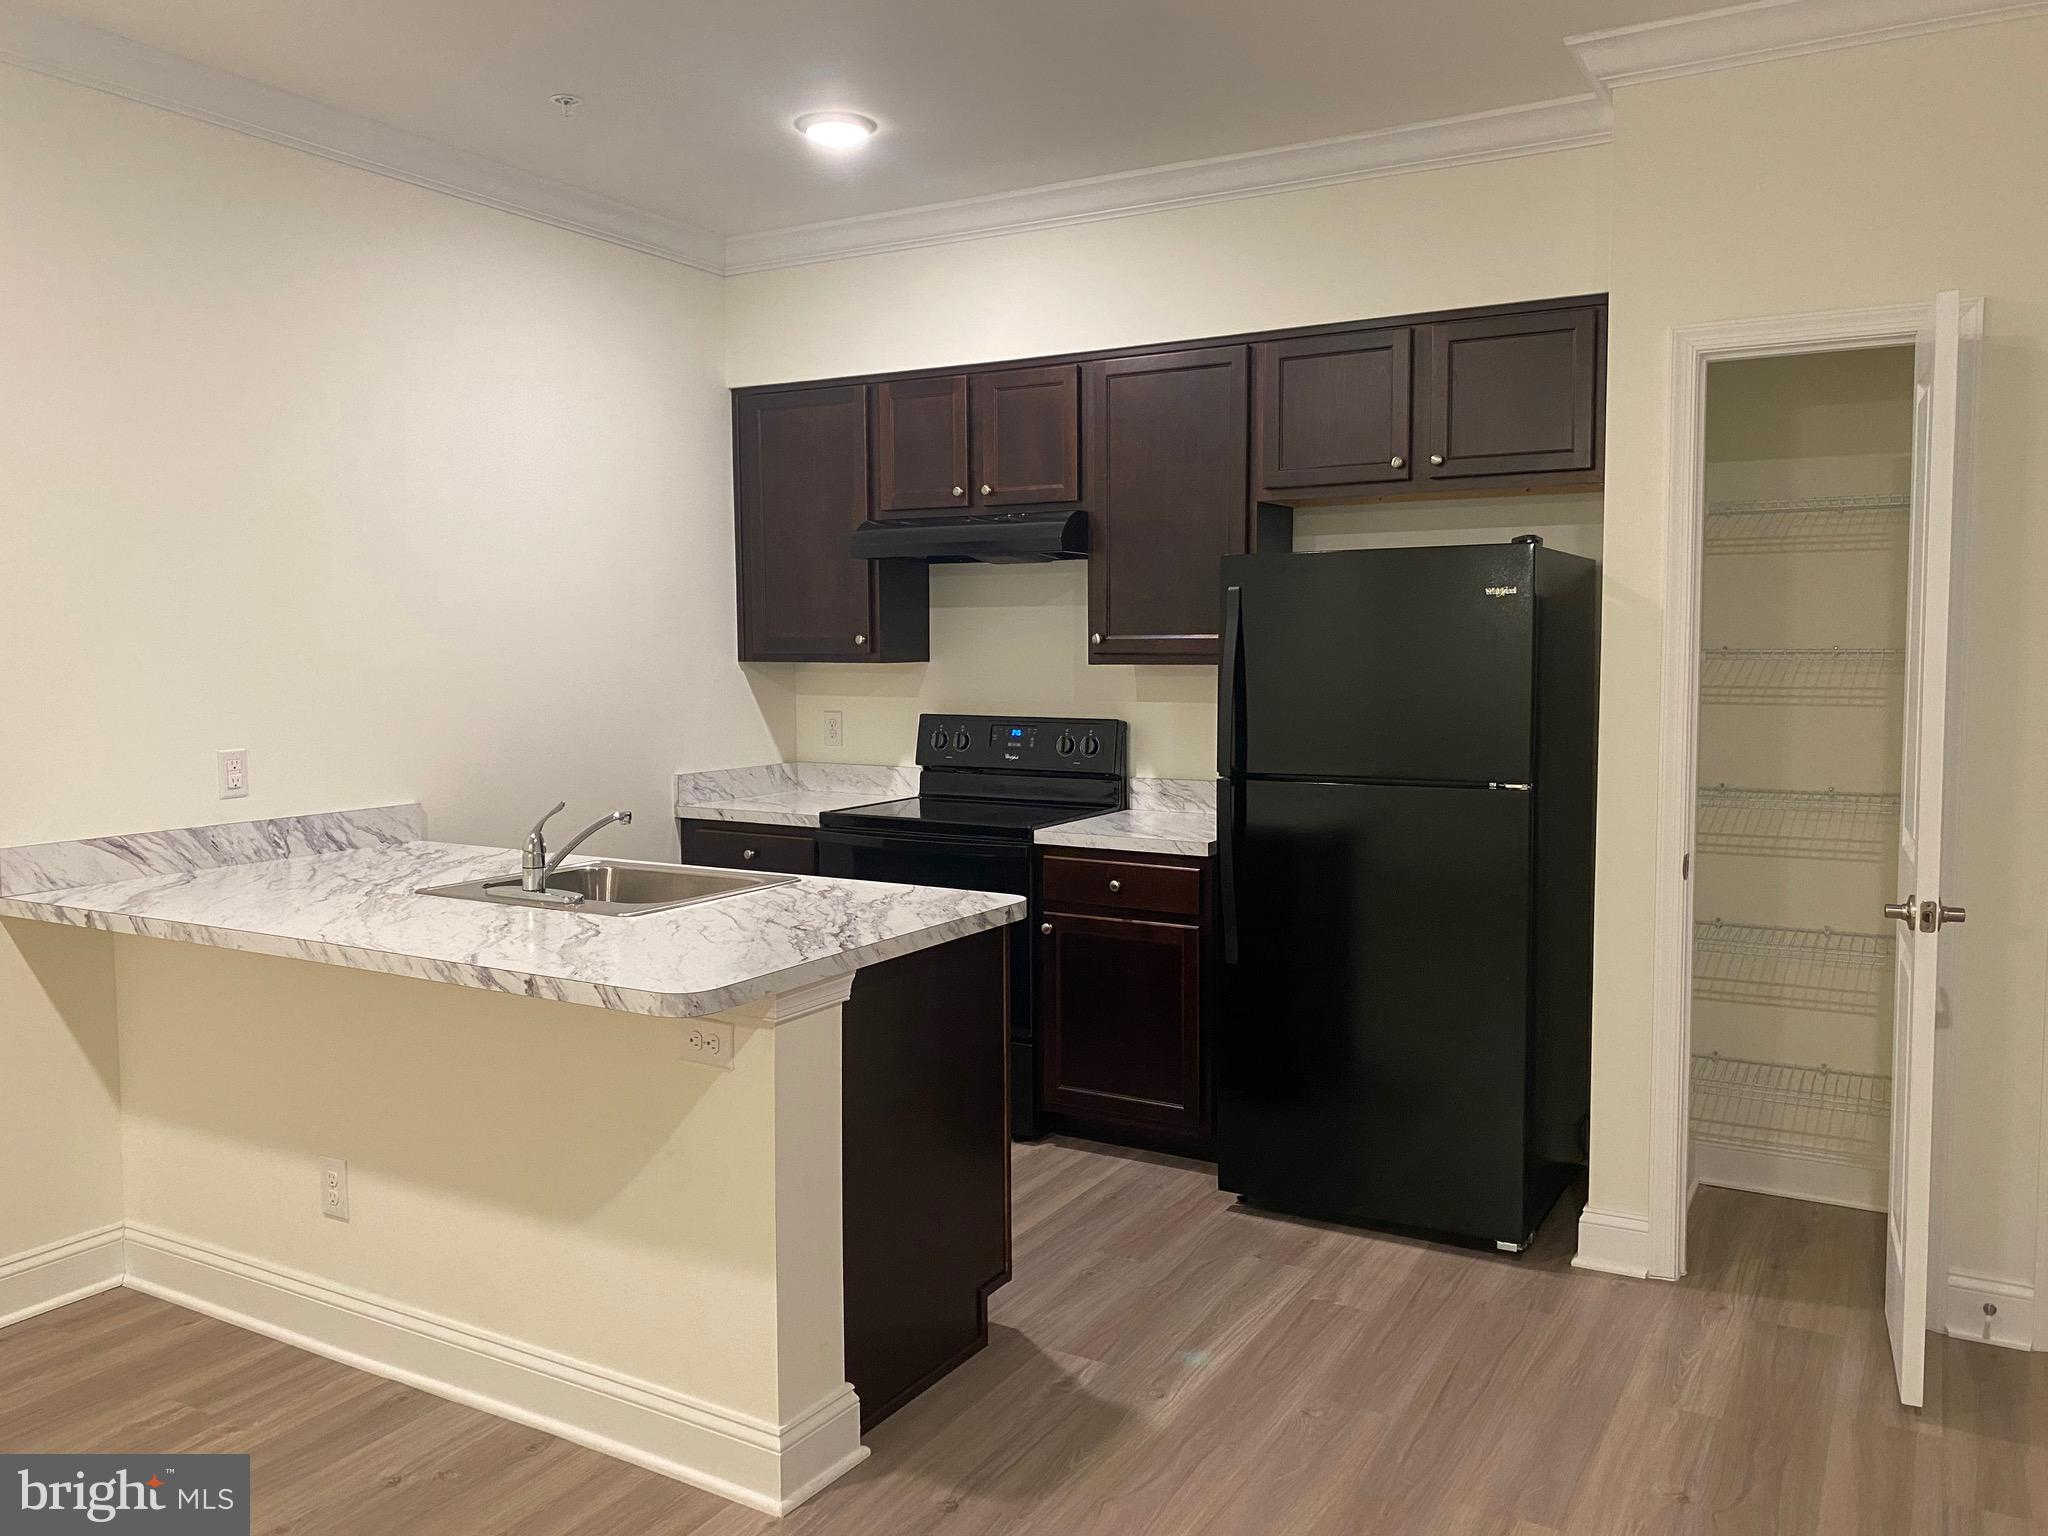 Another Property Rented - 1812 Main Street #203, Chester, MD 21619